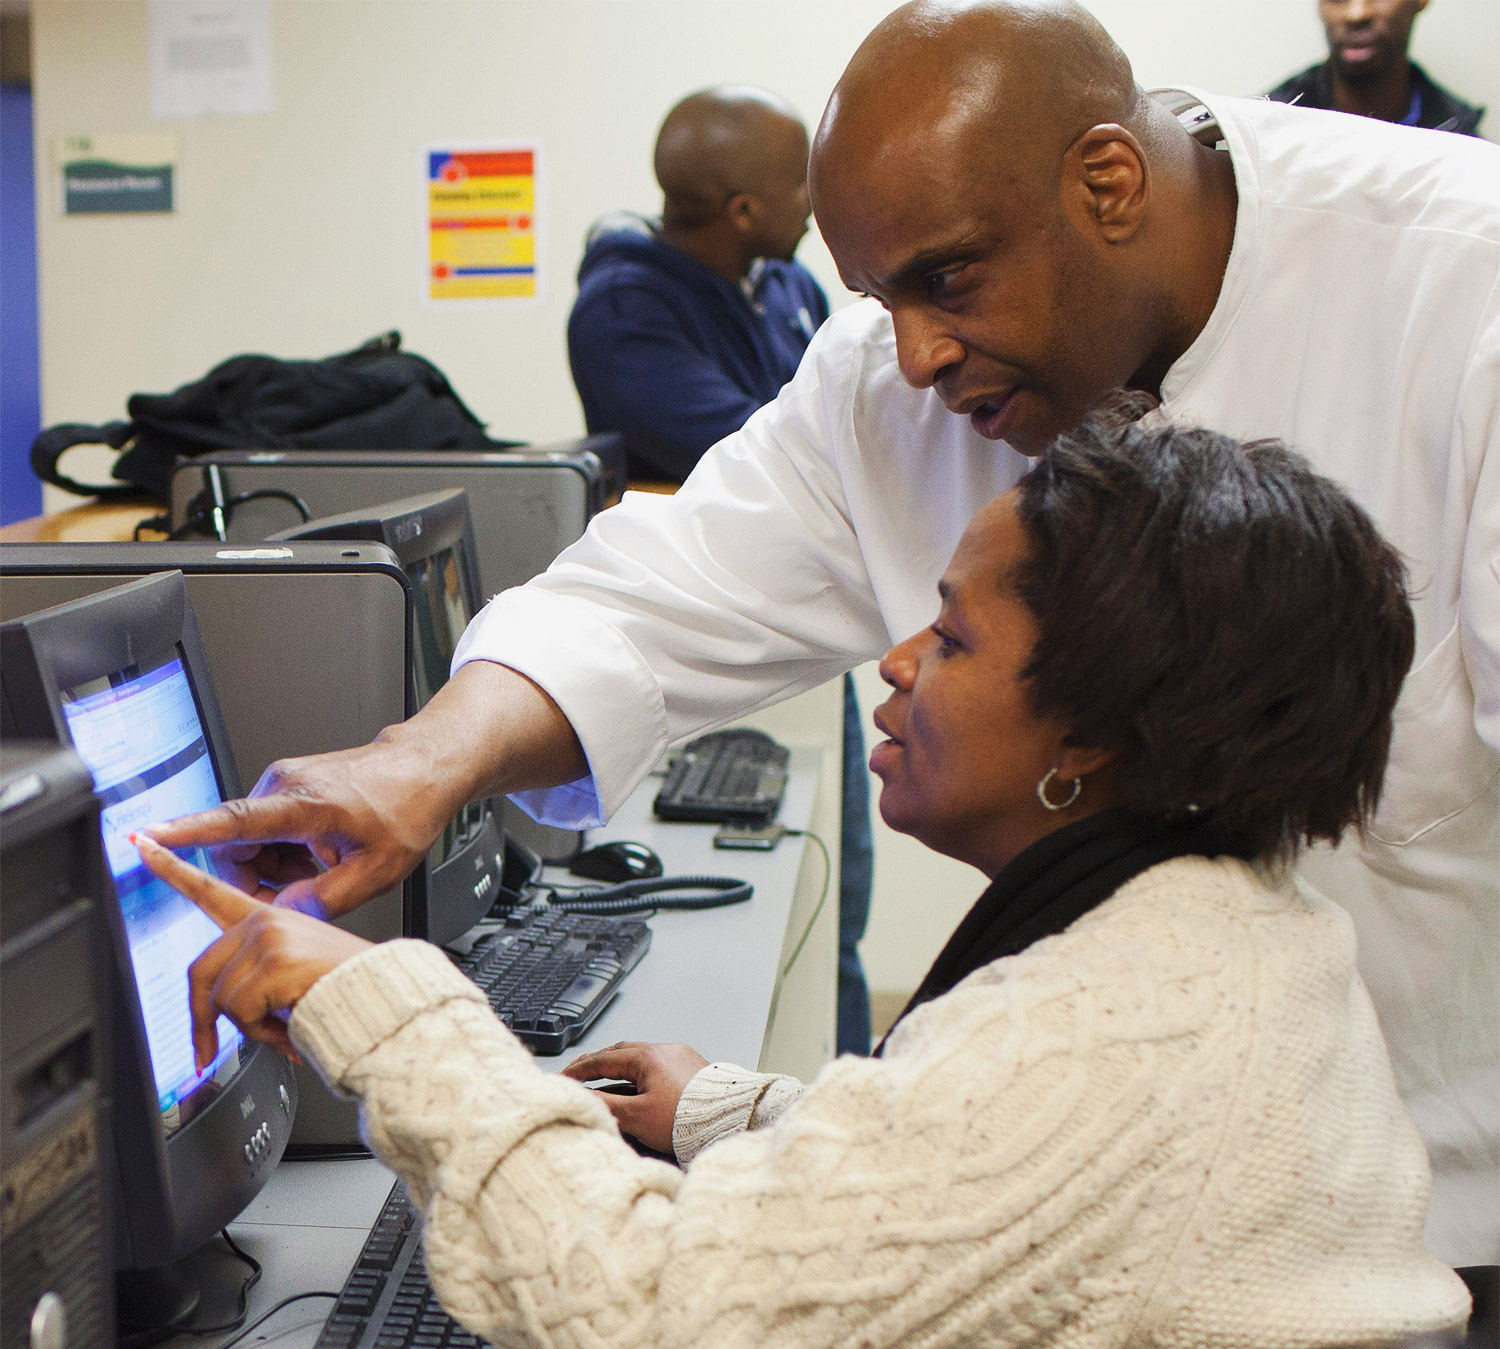 This course helps [individuals with justice involvement] learn the tech they missed in jail